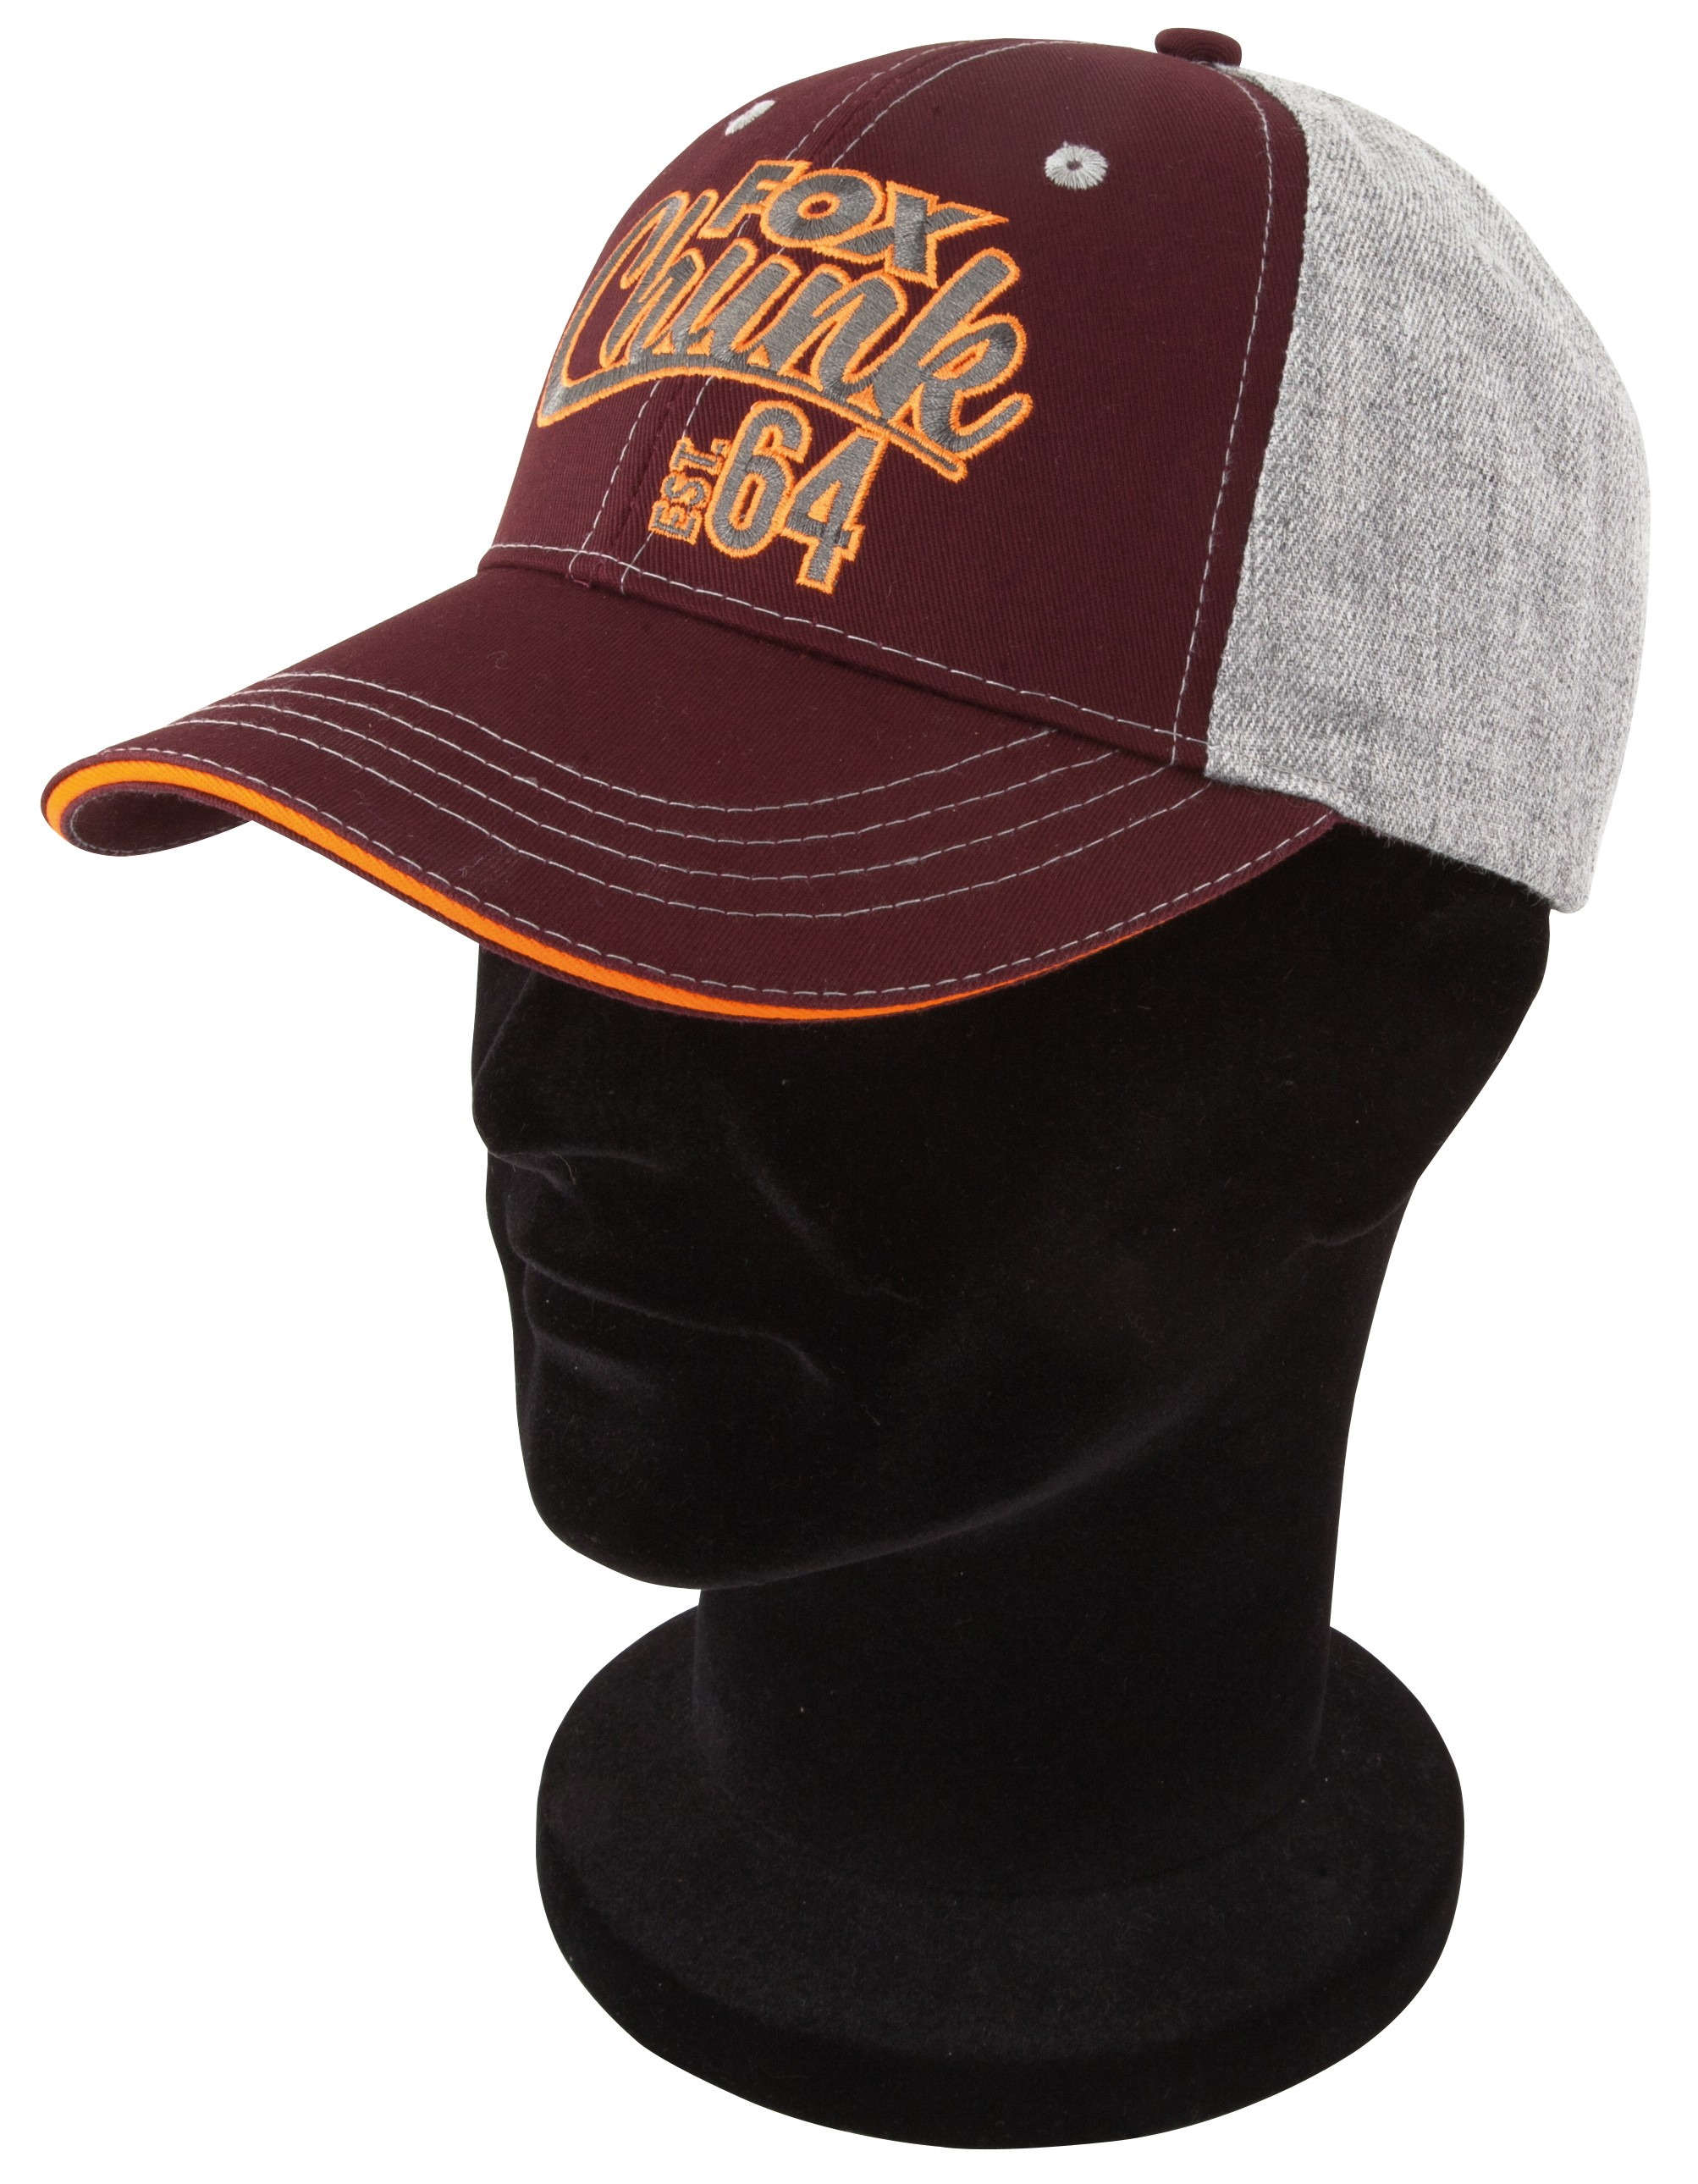 Fox - Chunk Grey Burgundy Orange Baseball Cap